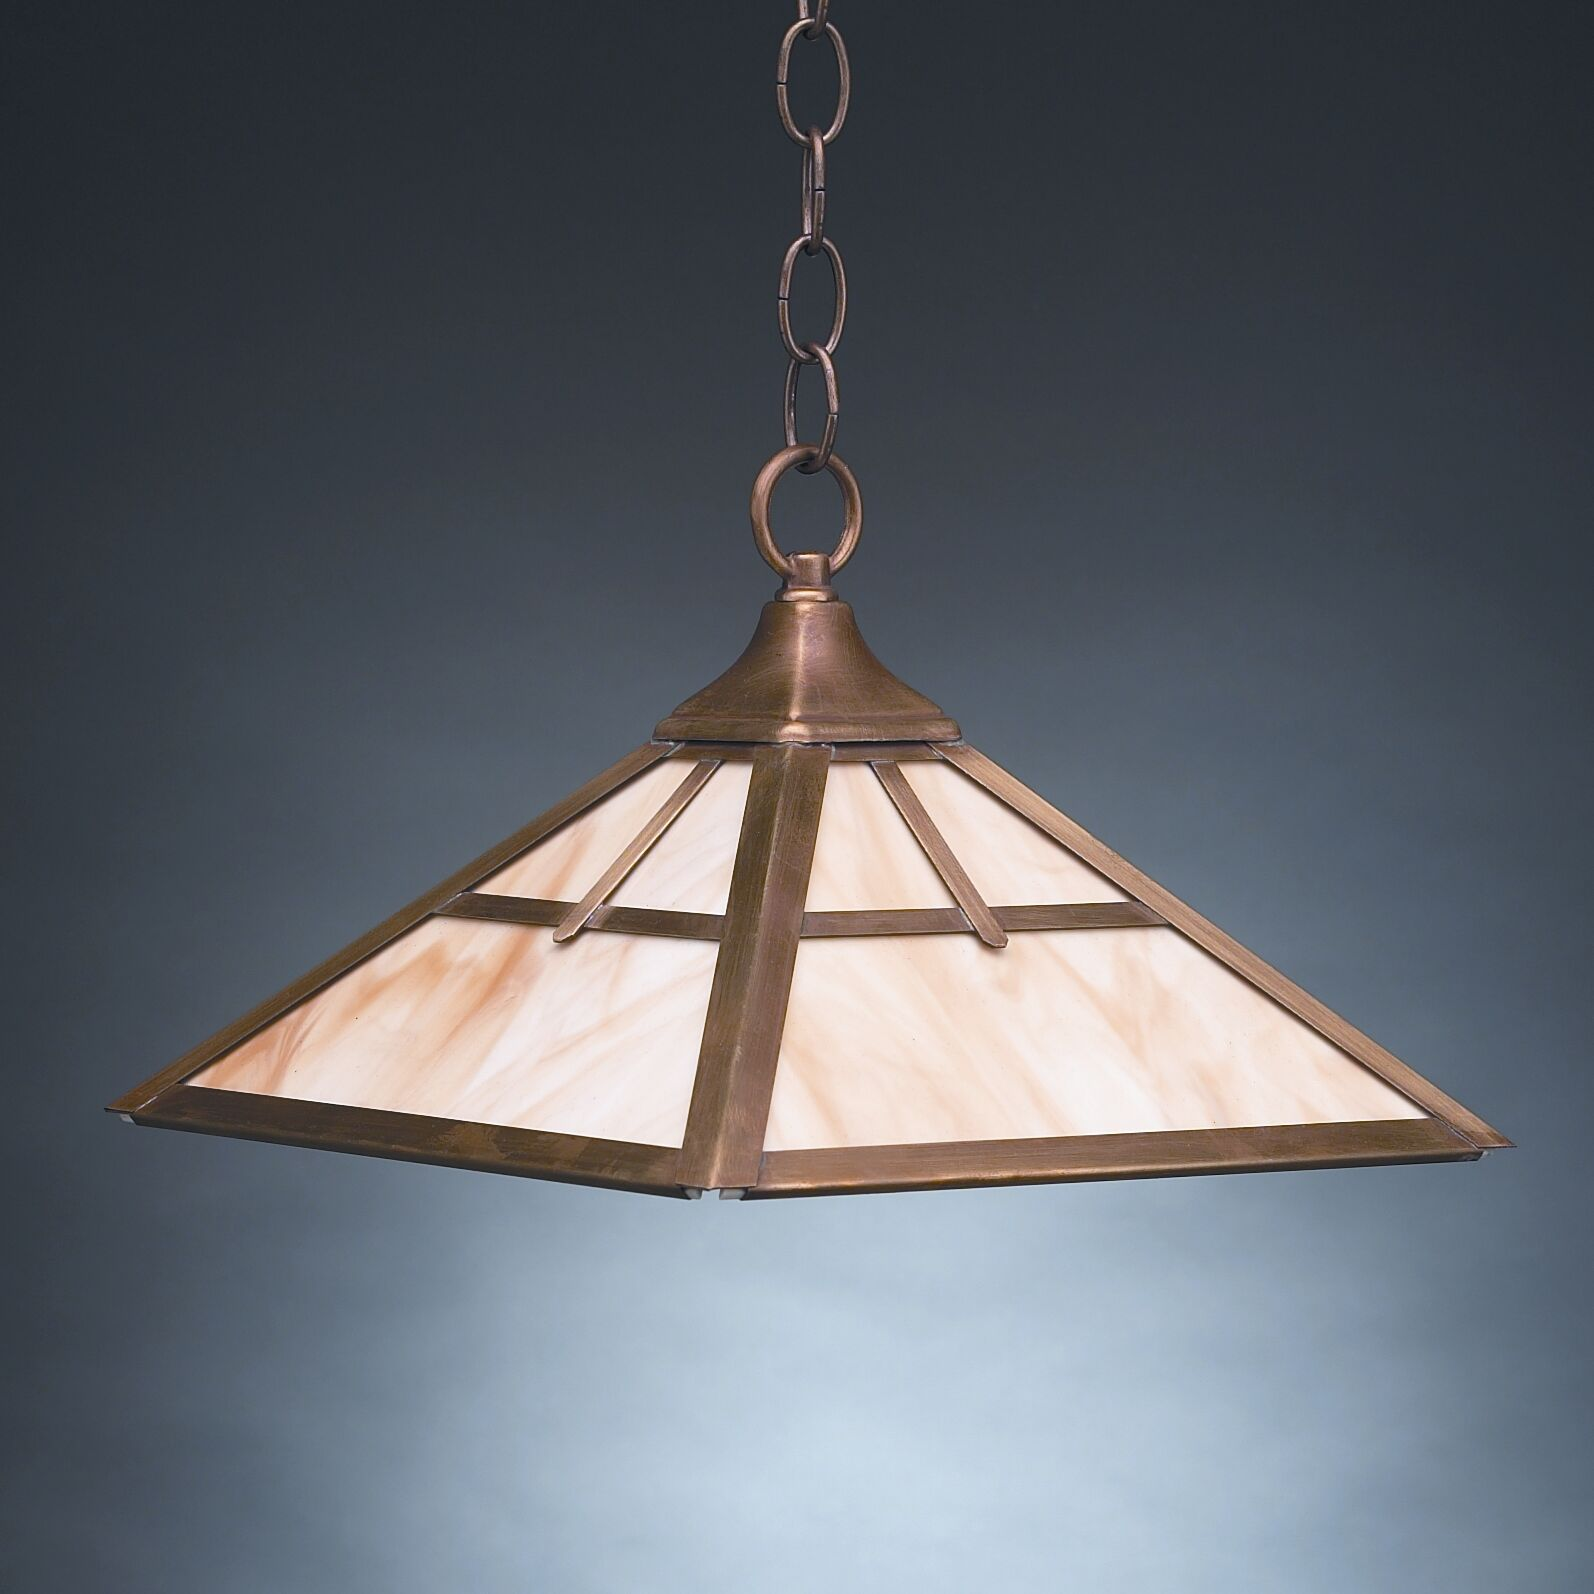 1-Light Dome Pendant Finish: Antique Brass, Glass Color: Caramel